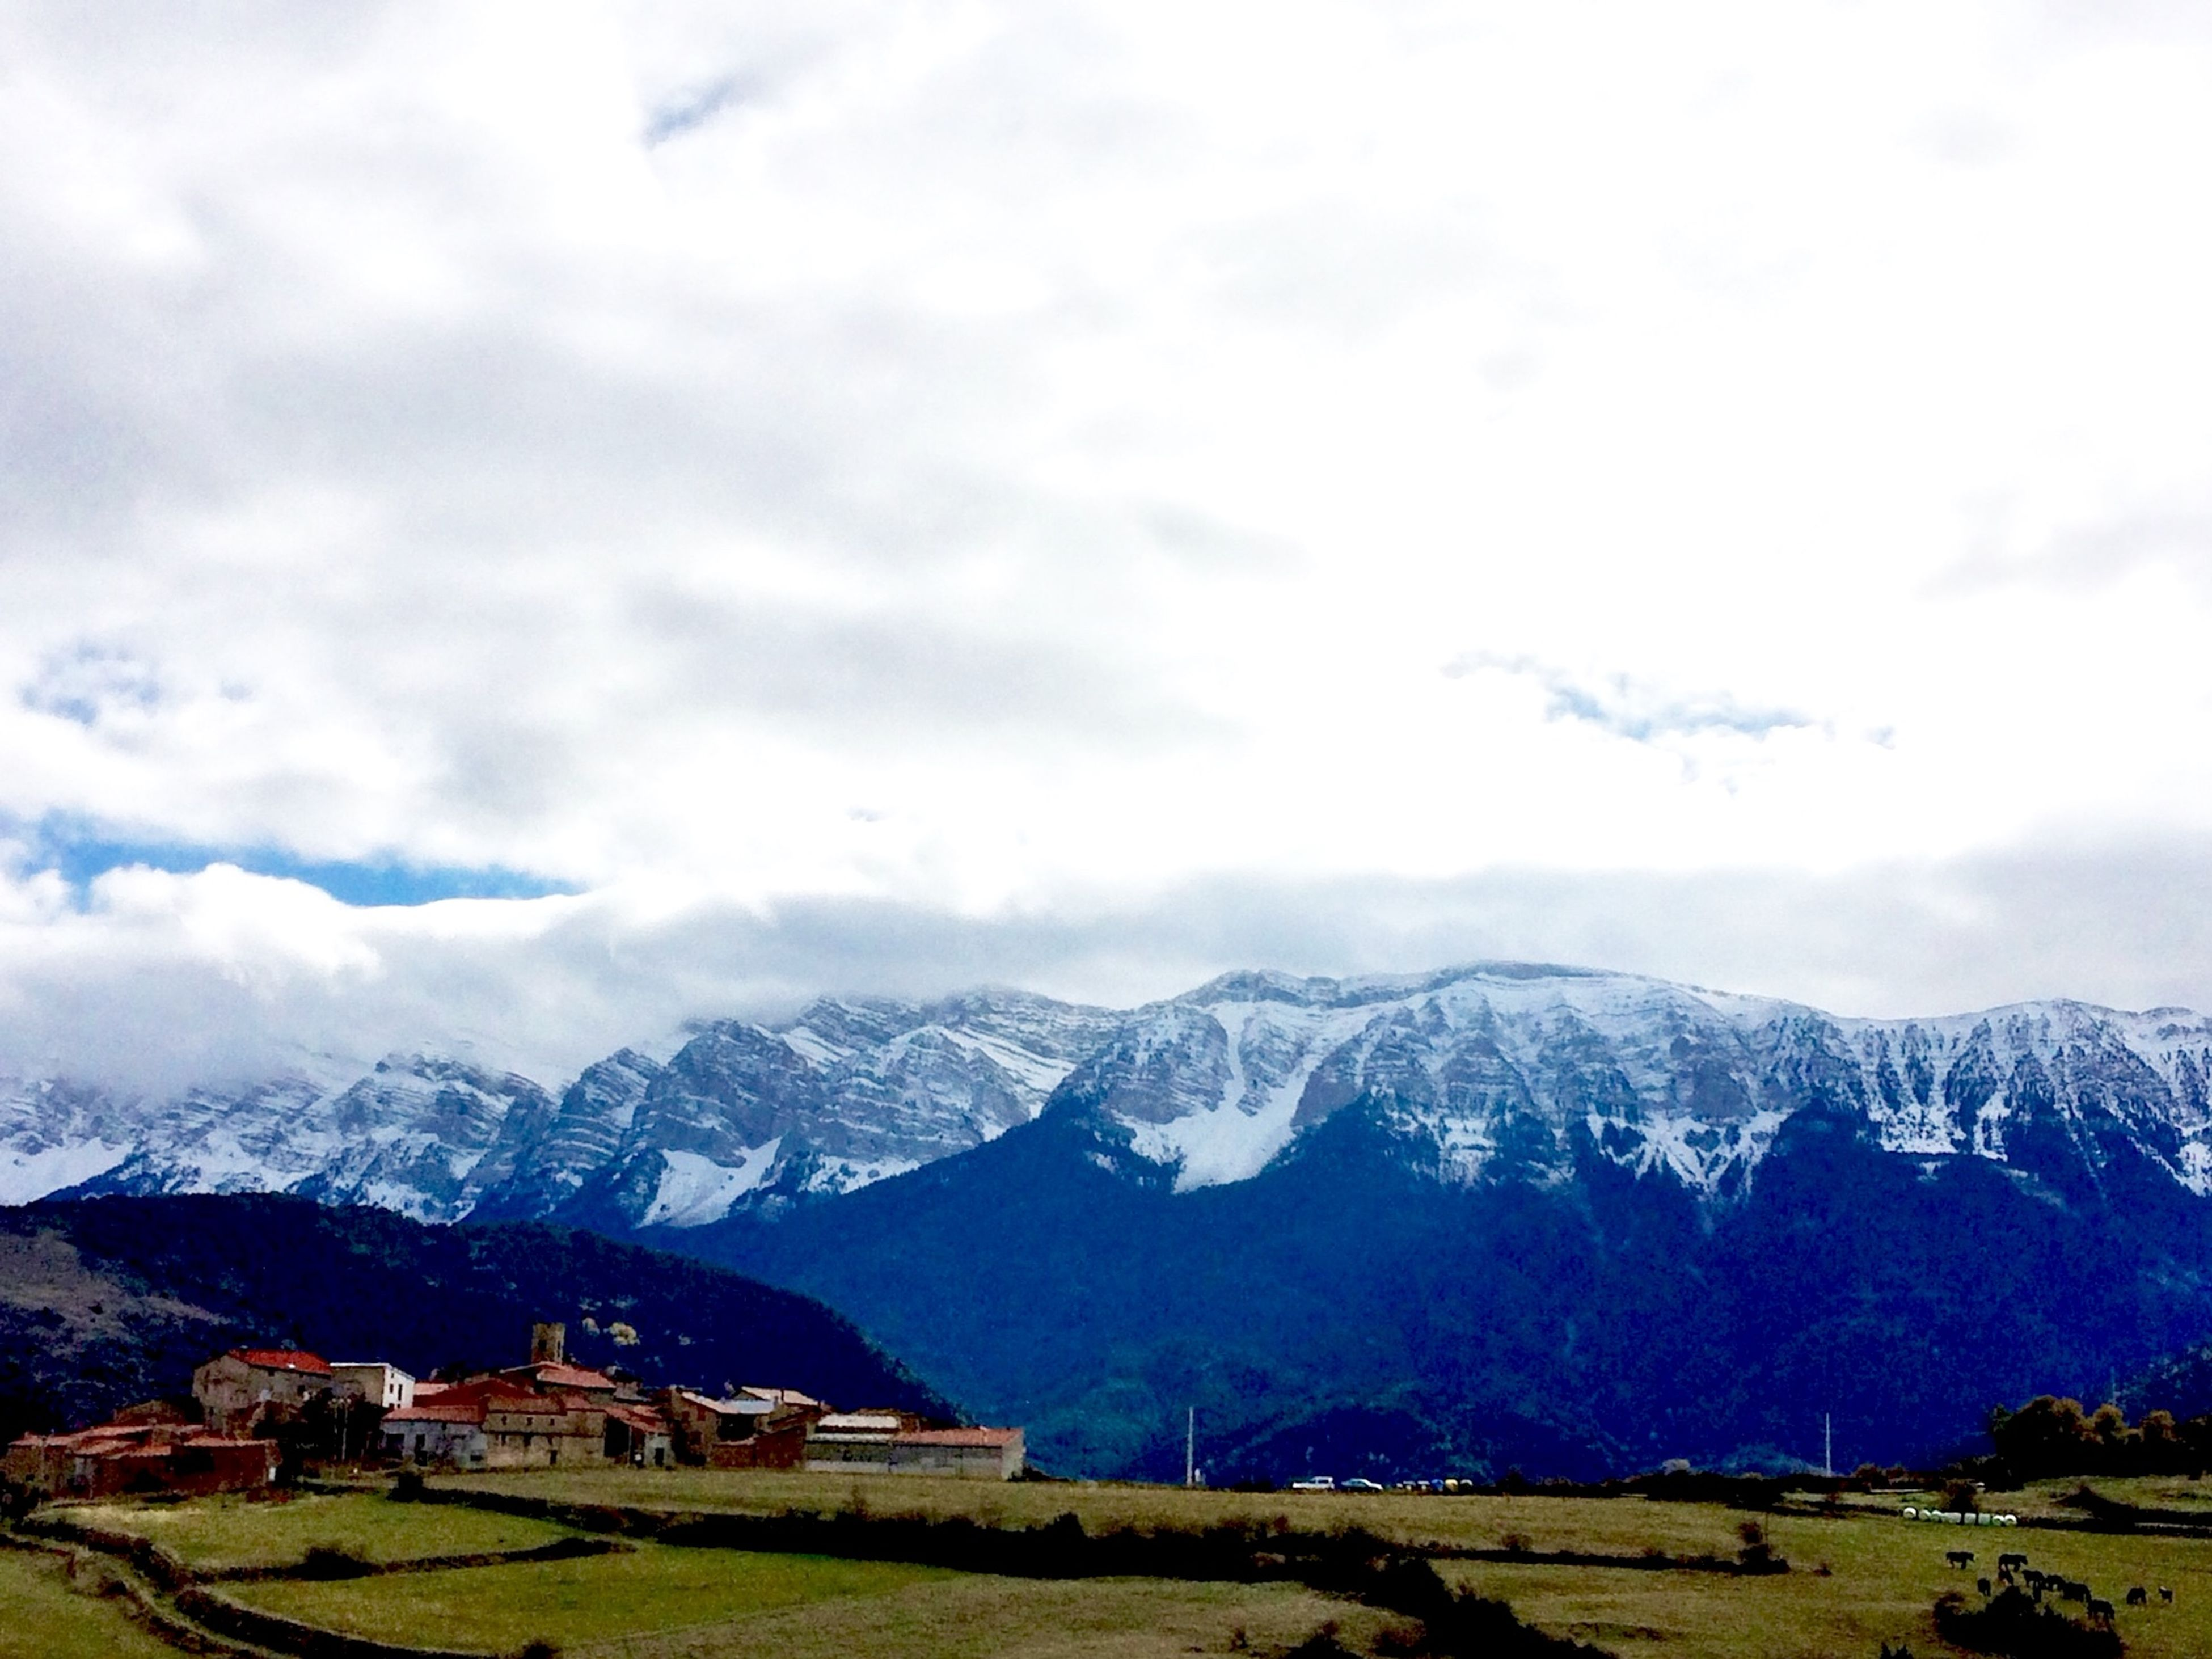 mountain, mountain range, snow, winter, sky, snowcapped mountain, scenics, landscape, tranquil scene, beauty in nature, cold temperature, cloud - sky, tranquility, weather, nature, season, building exterior, house, cloud, cloudy